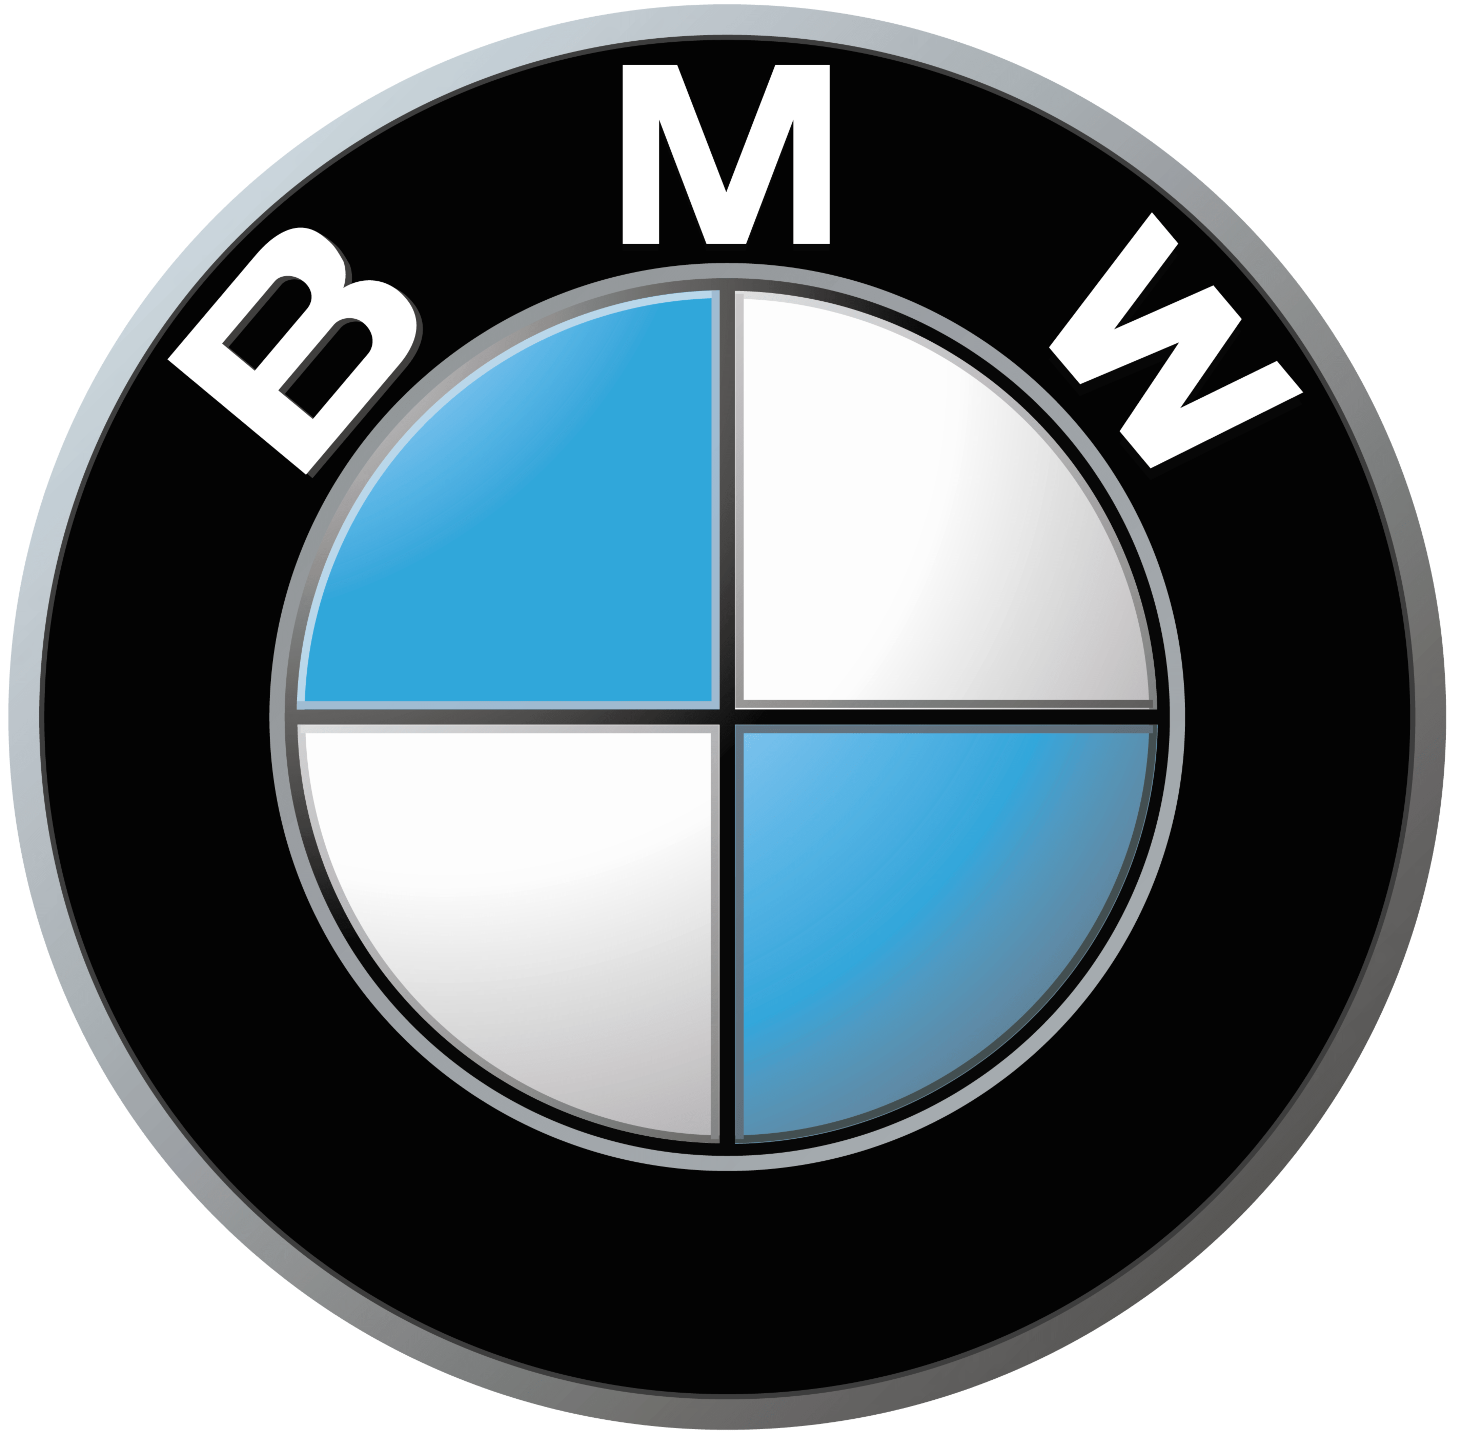 BMW-Logo-Meaning